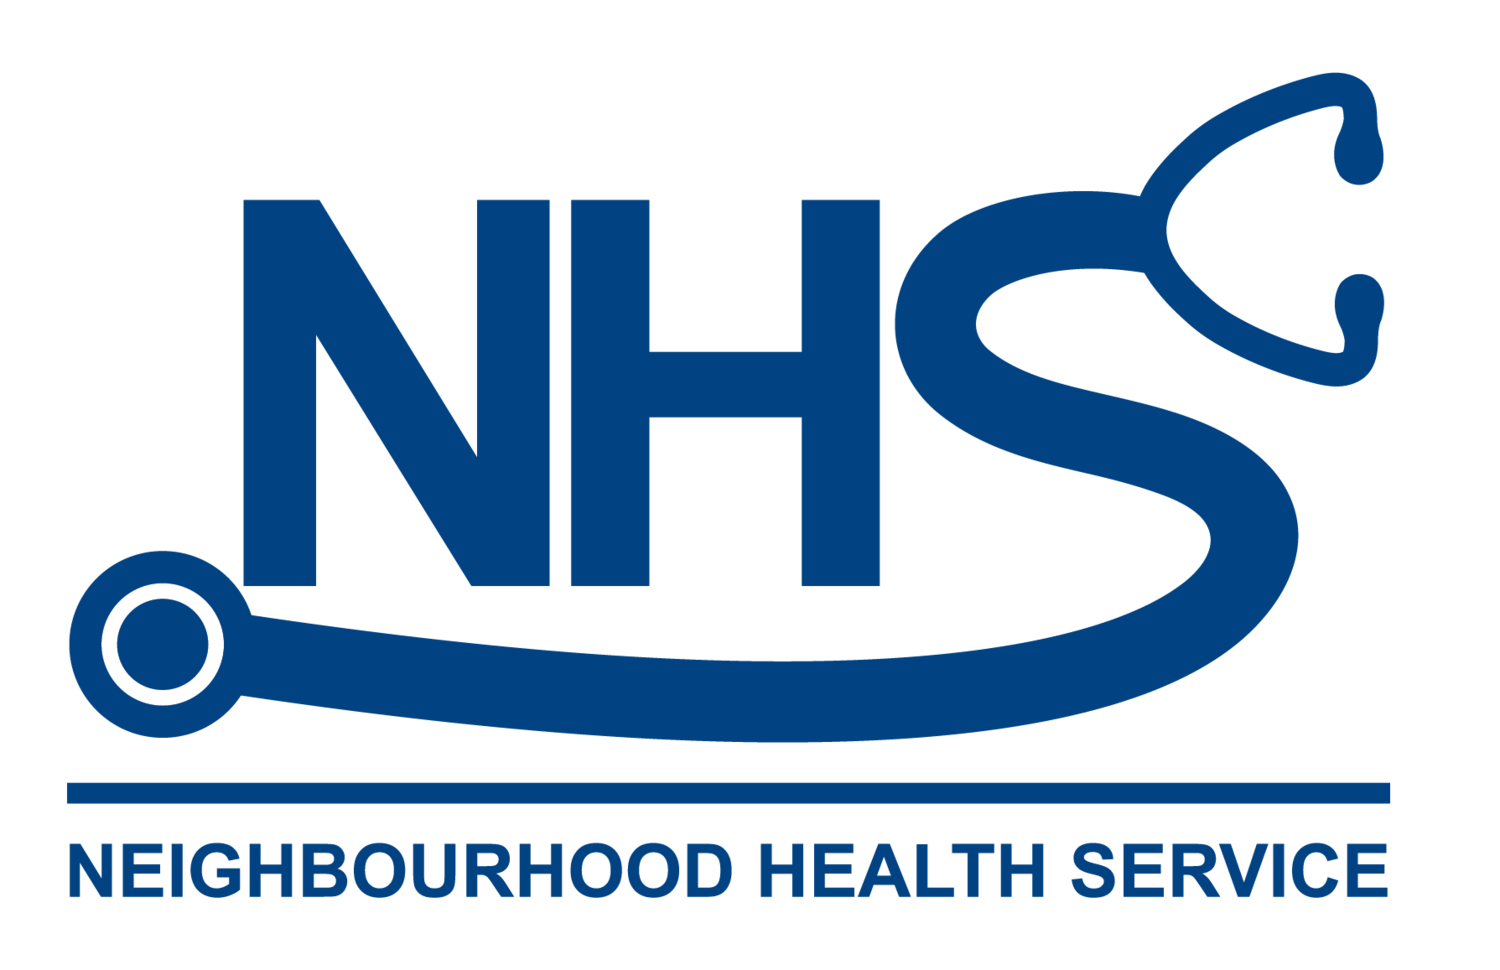 Neighbourhood Health Service (NHS)